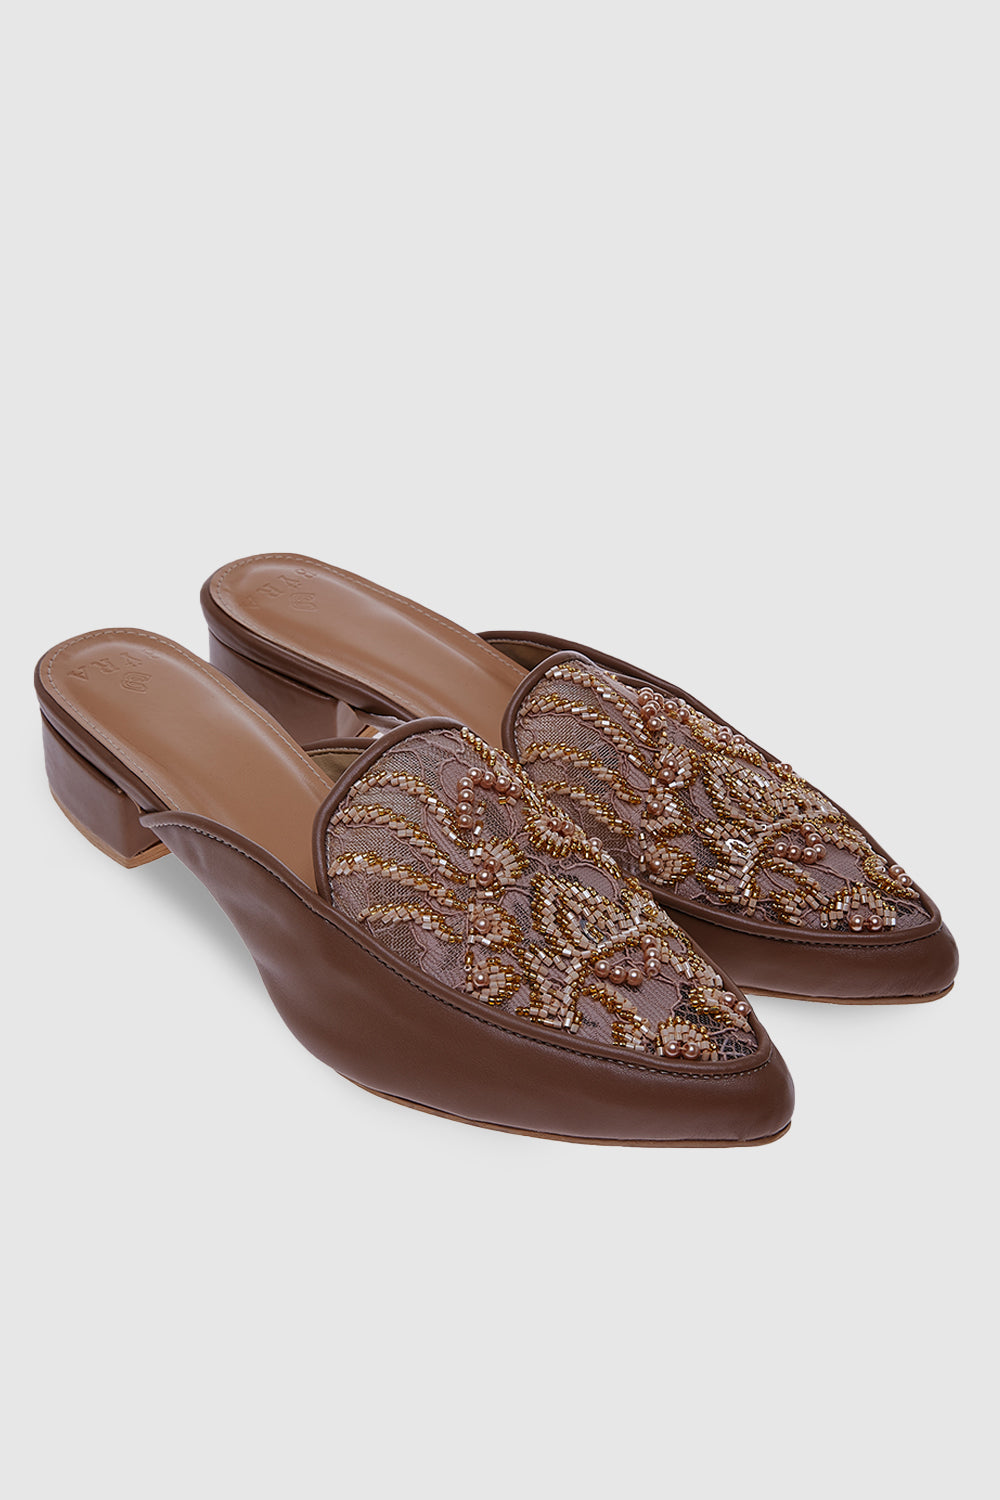 Grace Shoes in Mocca